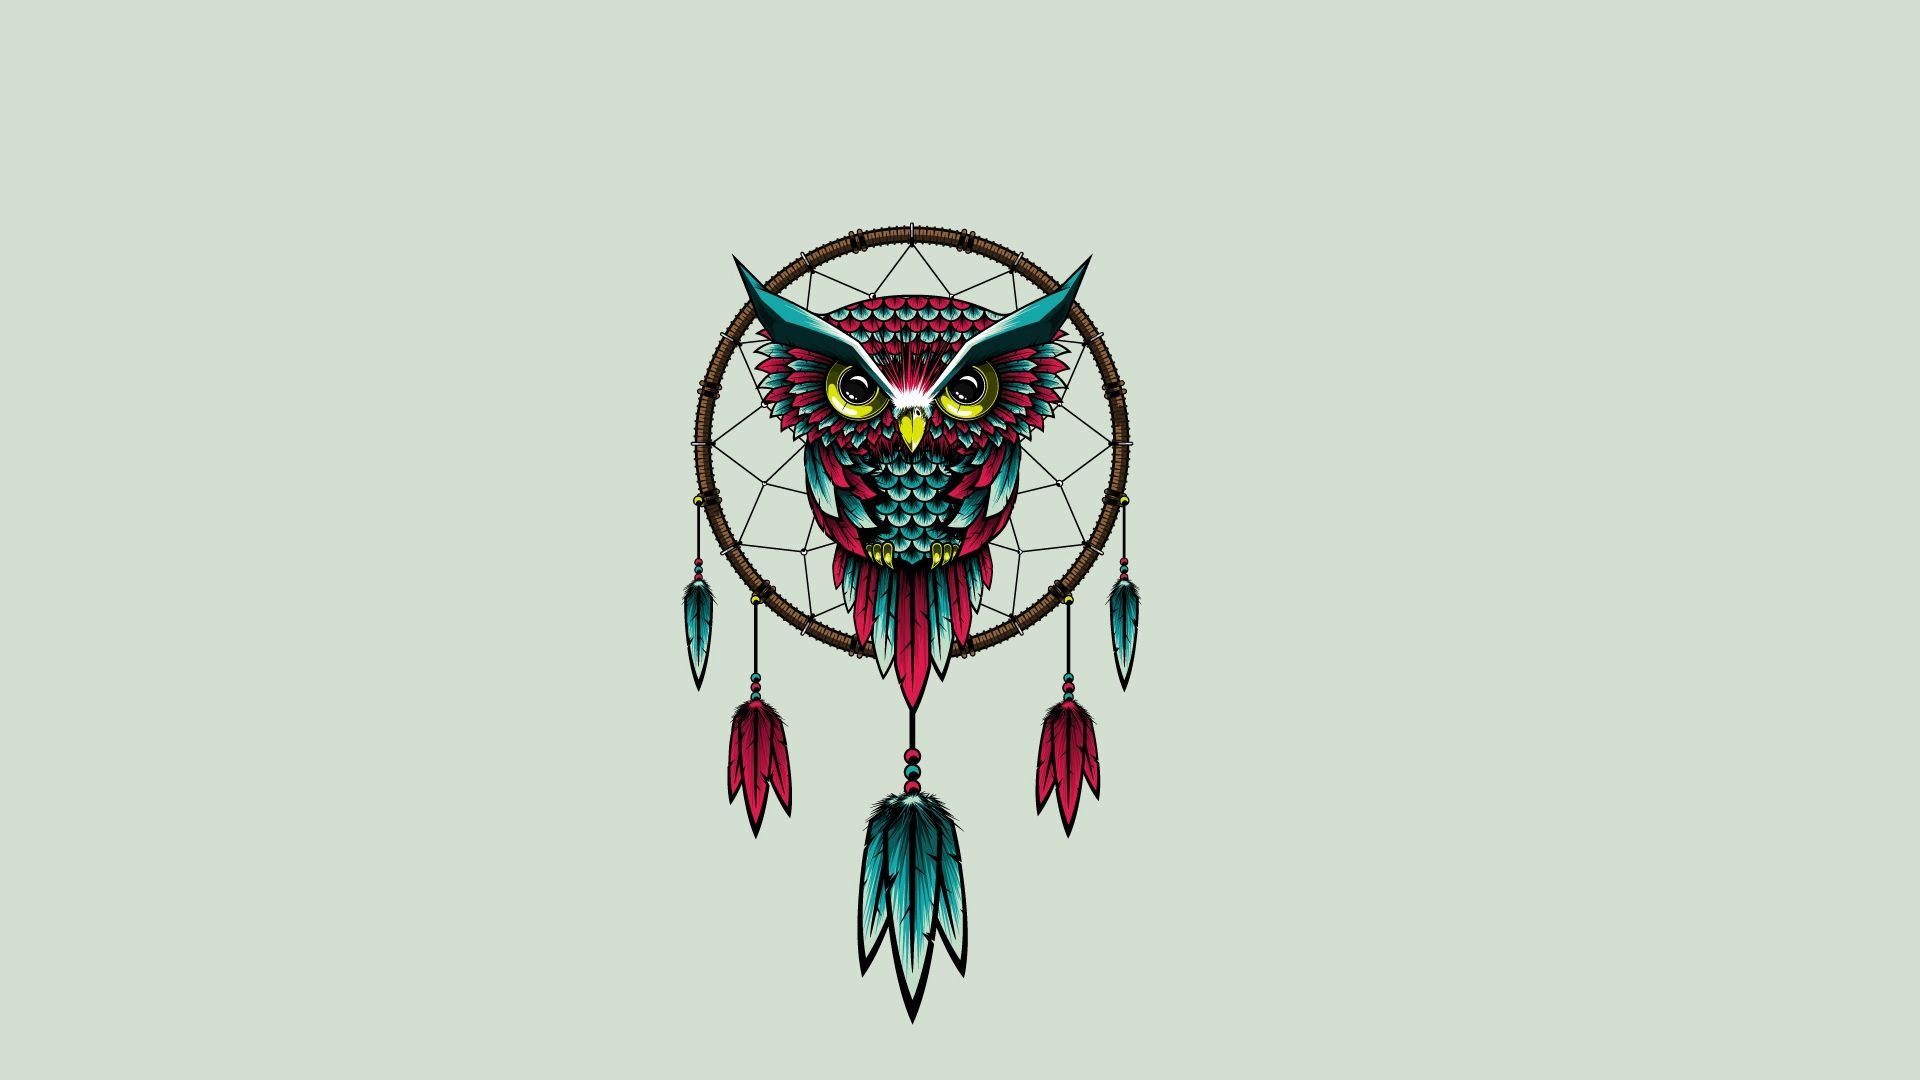 Full HD 1080p Dreamcatcher Wallpapers HD, Desktop Backgrounds ...